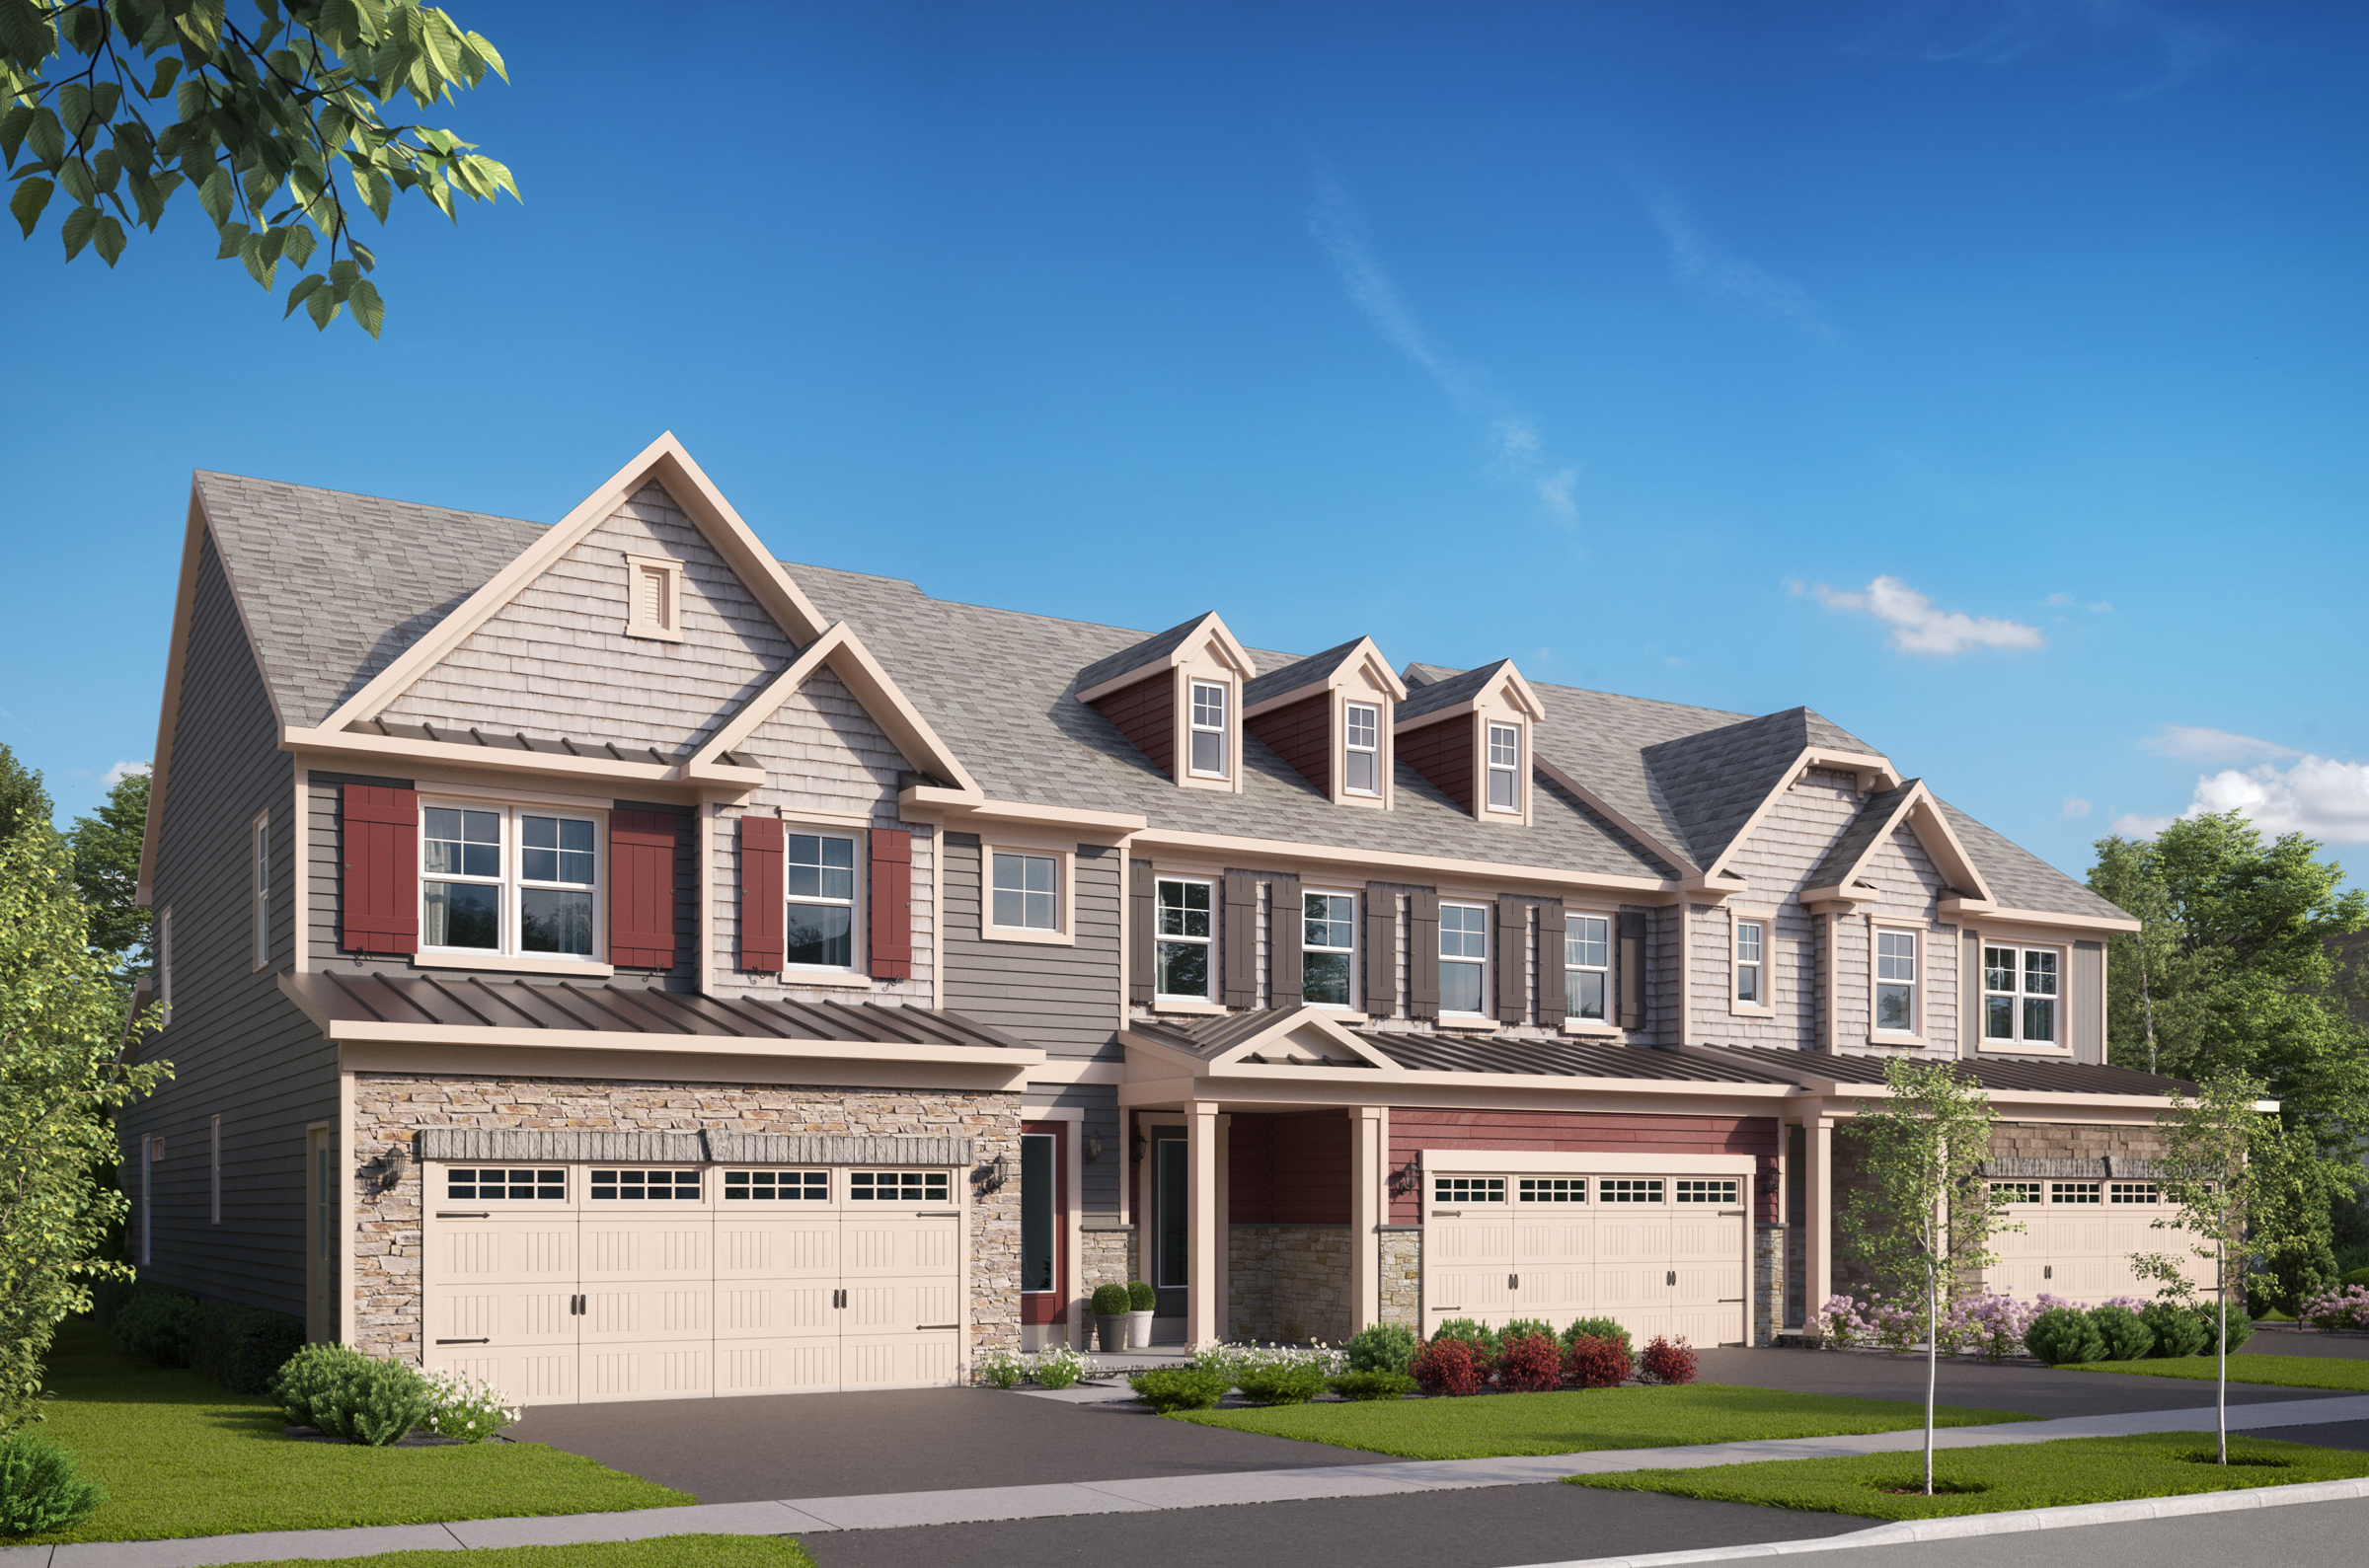 westminster new homes at brunswick crossing updated 2